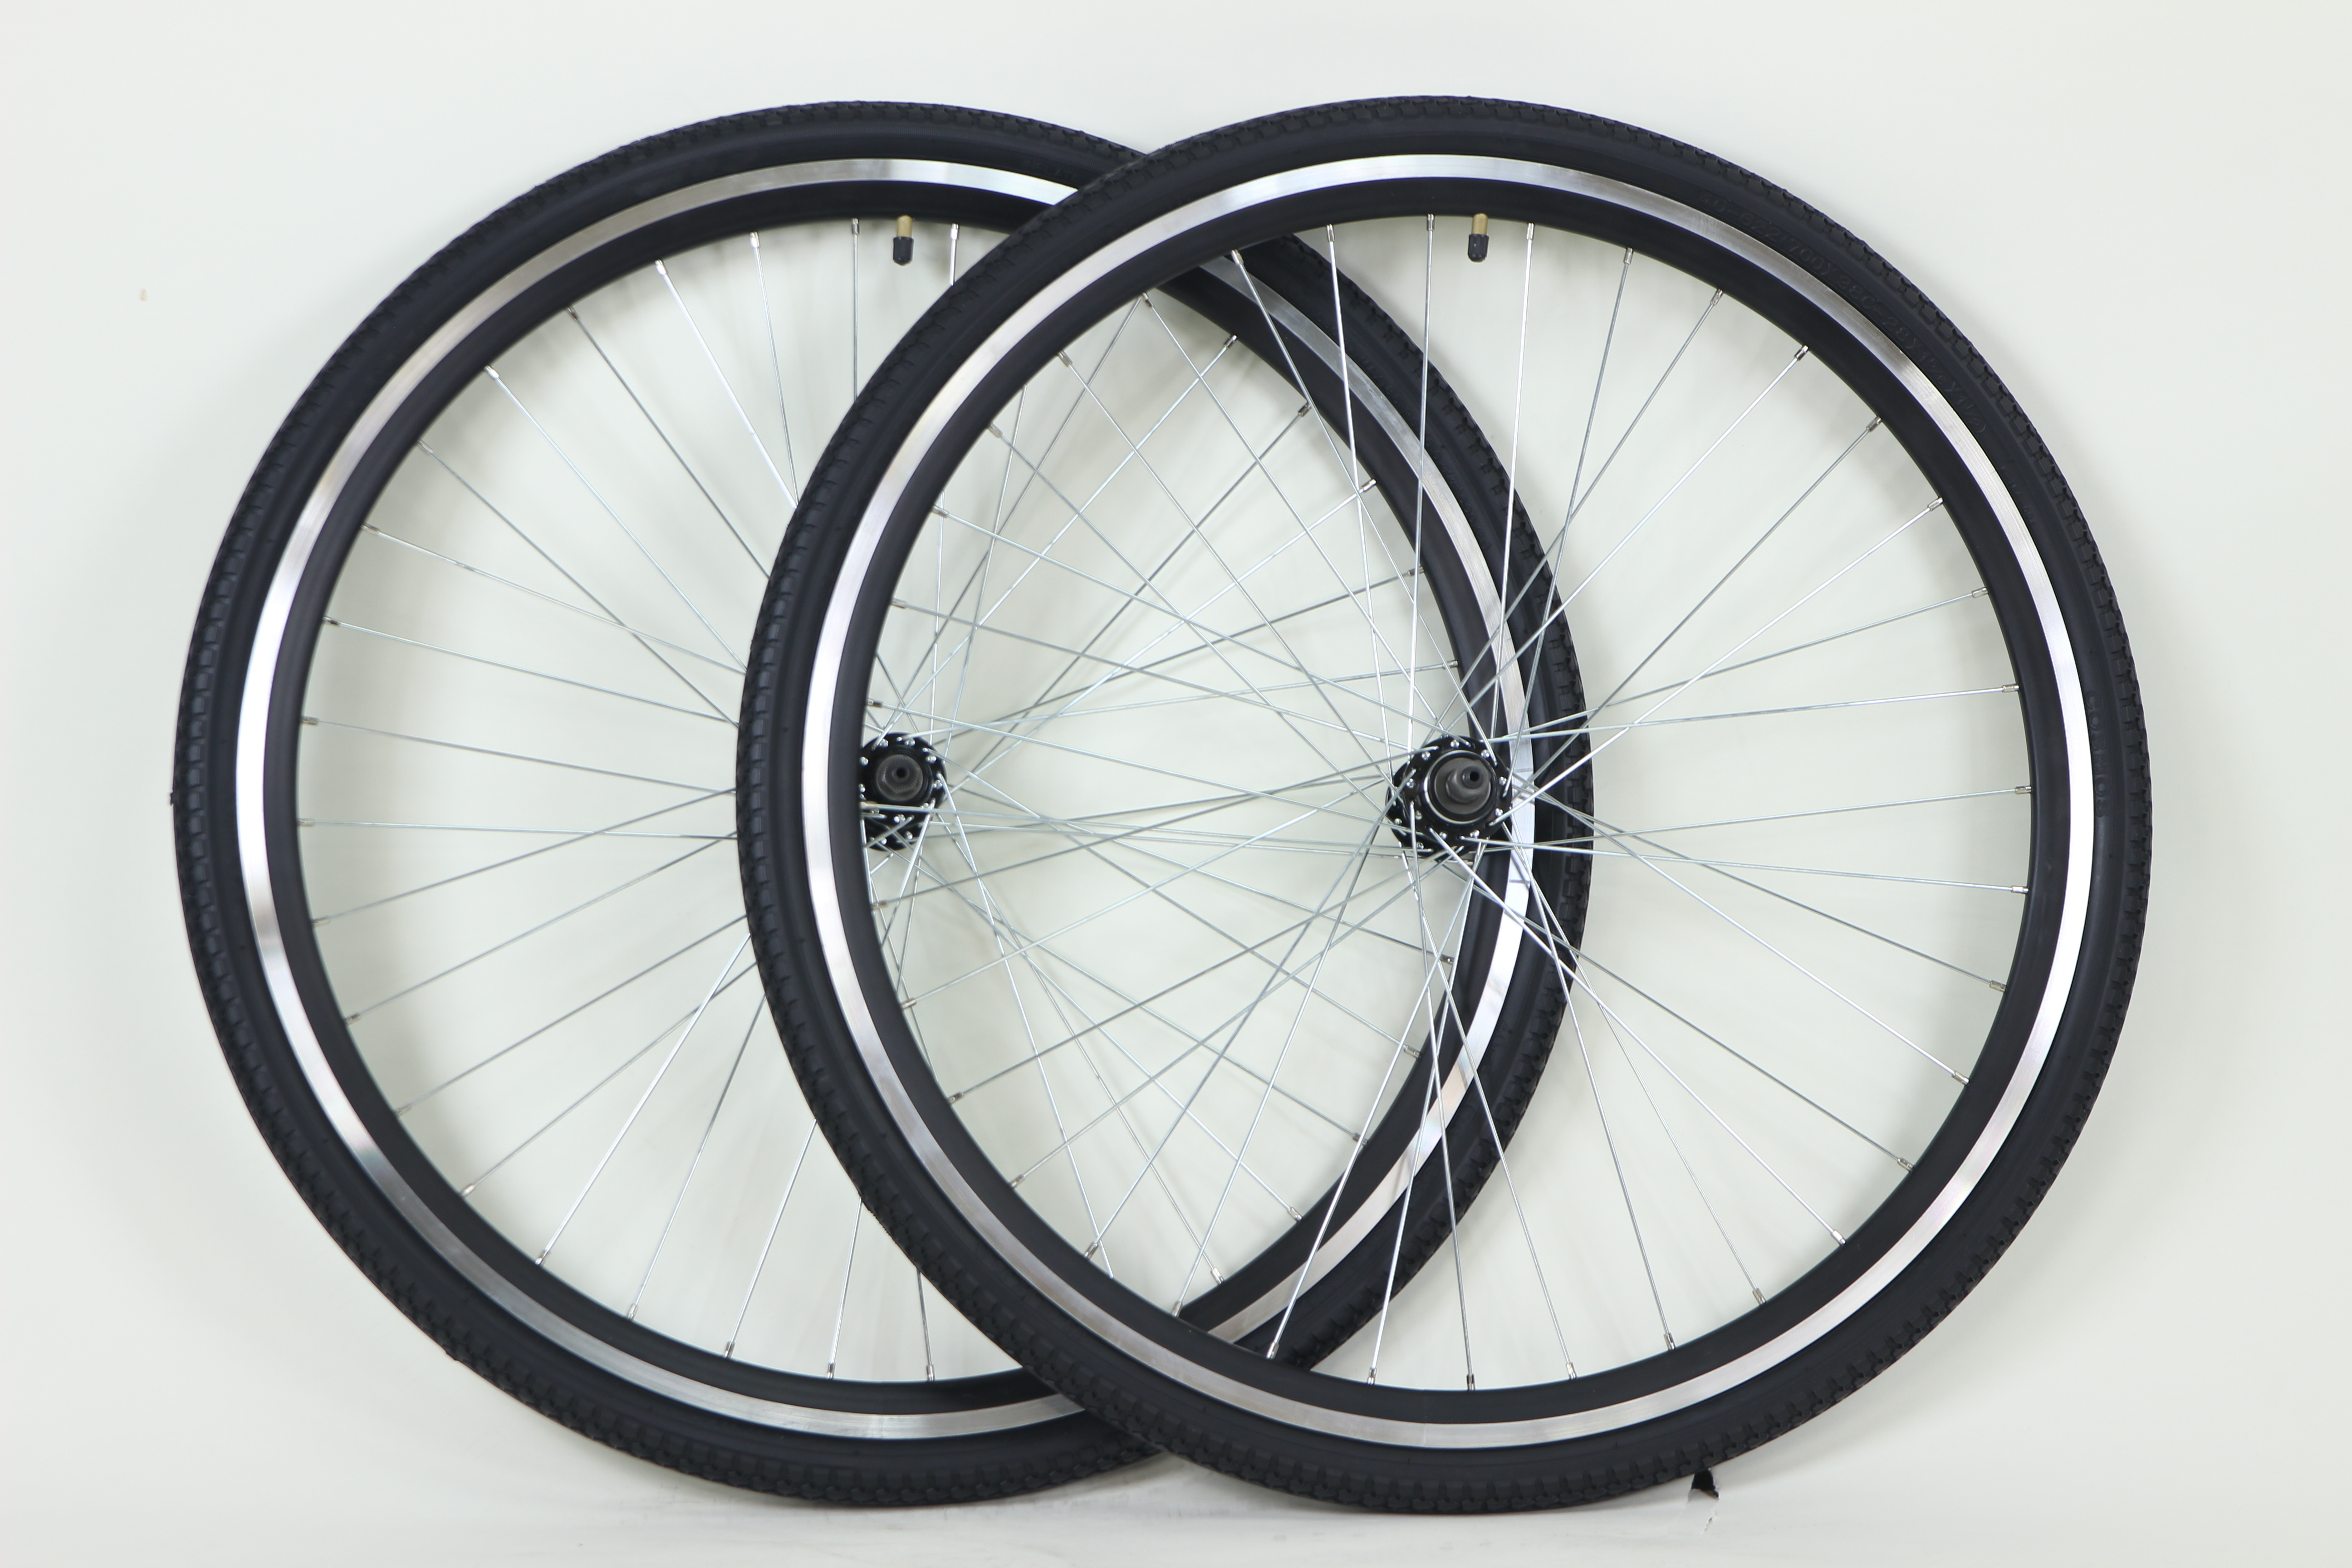 Wheels 700c Aluminum Alloy Hybrid Wheels for Thread On Freewheel Multi Speed with Kenda Tires Image